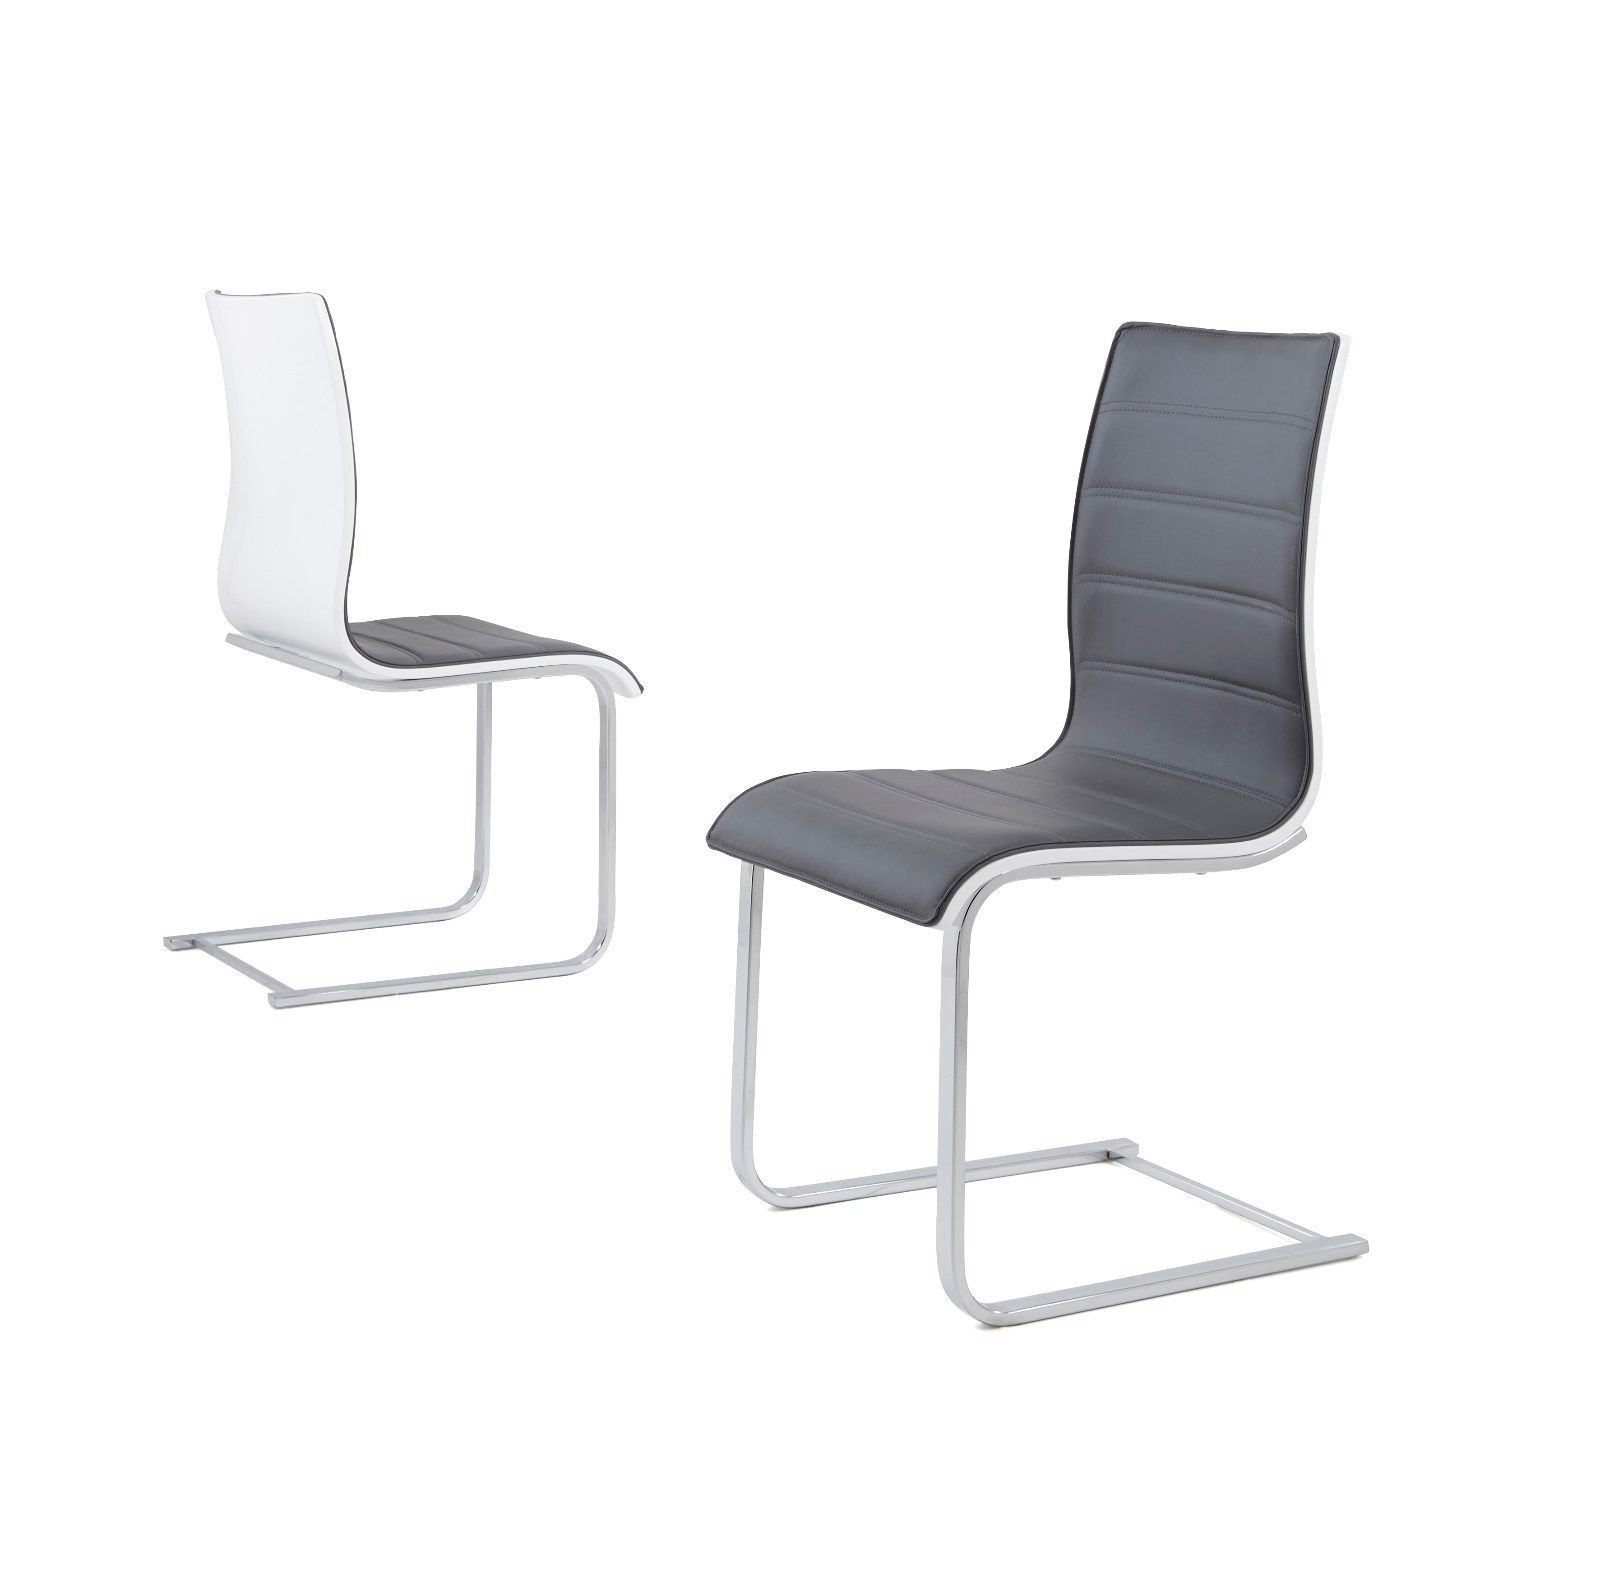 Wynn High Gloss Back Dining Chairs Only – Grey & White In Most Recent High Gloss White Dining Chairs (View 7 of 25)